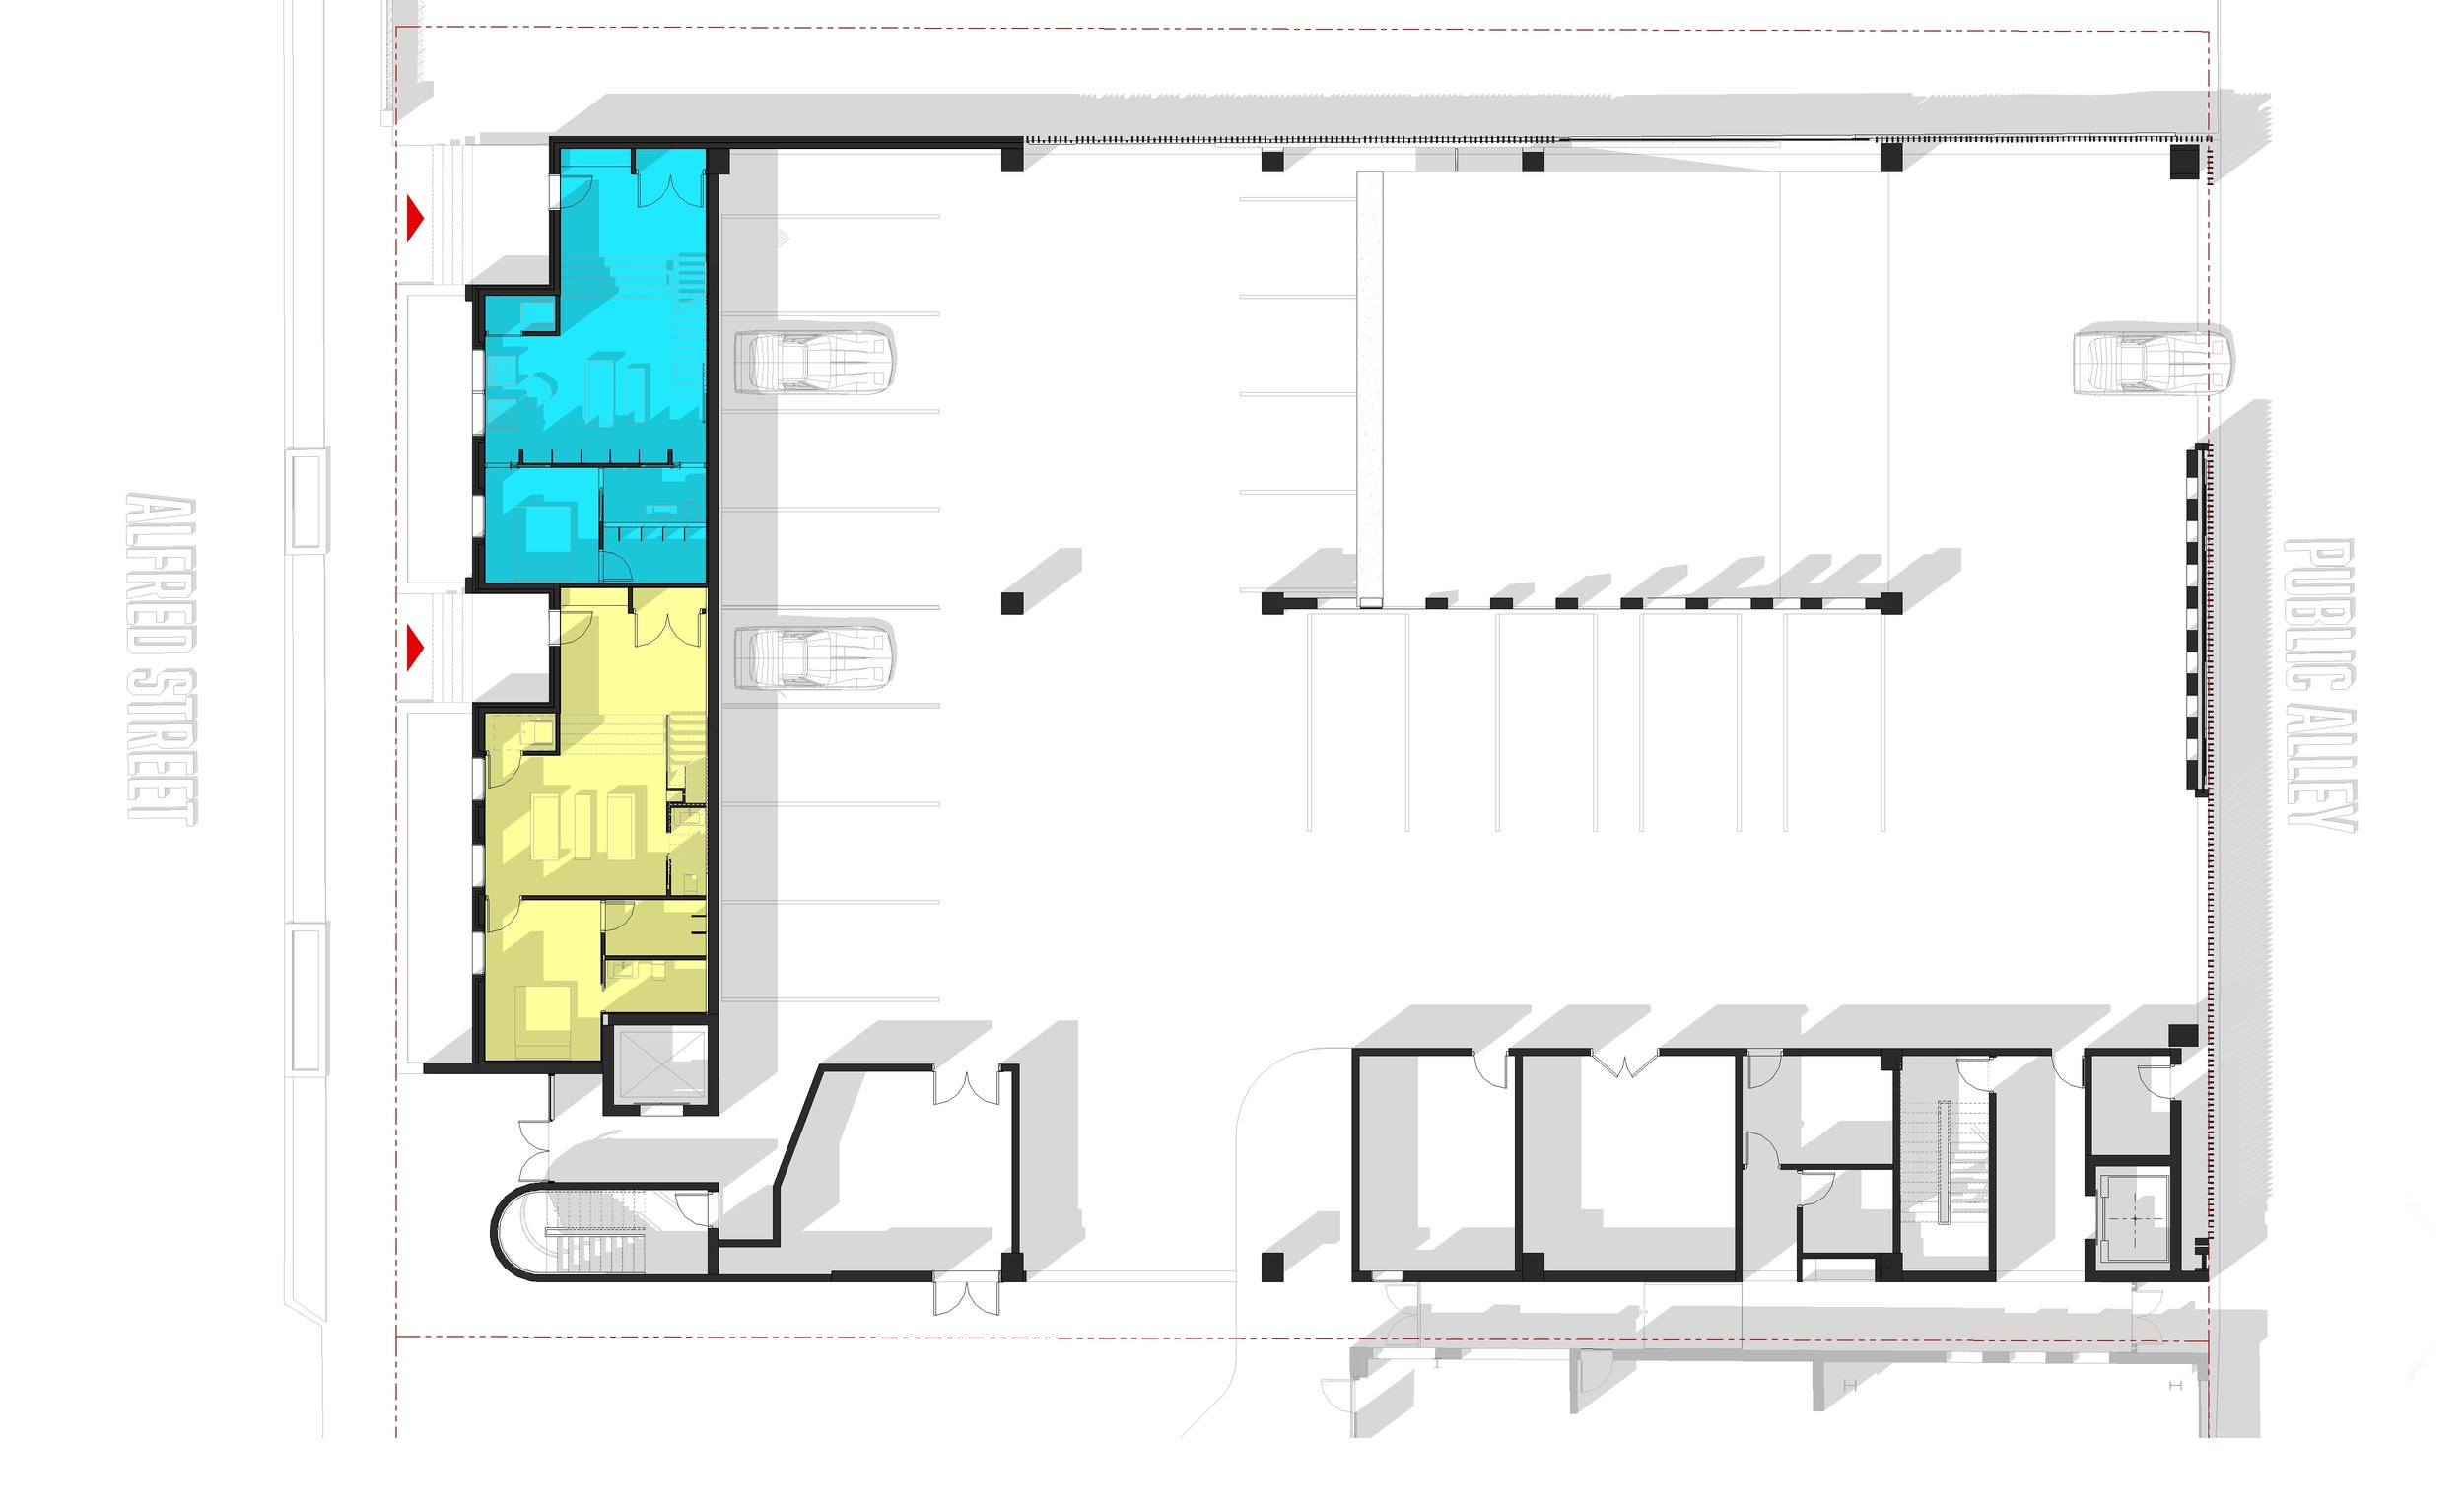 105 ALFRED GROUND LEVEL PLAN  - OOMBRA ARCHITECTS ©